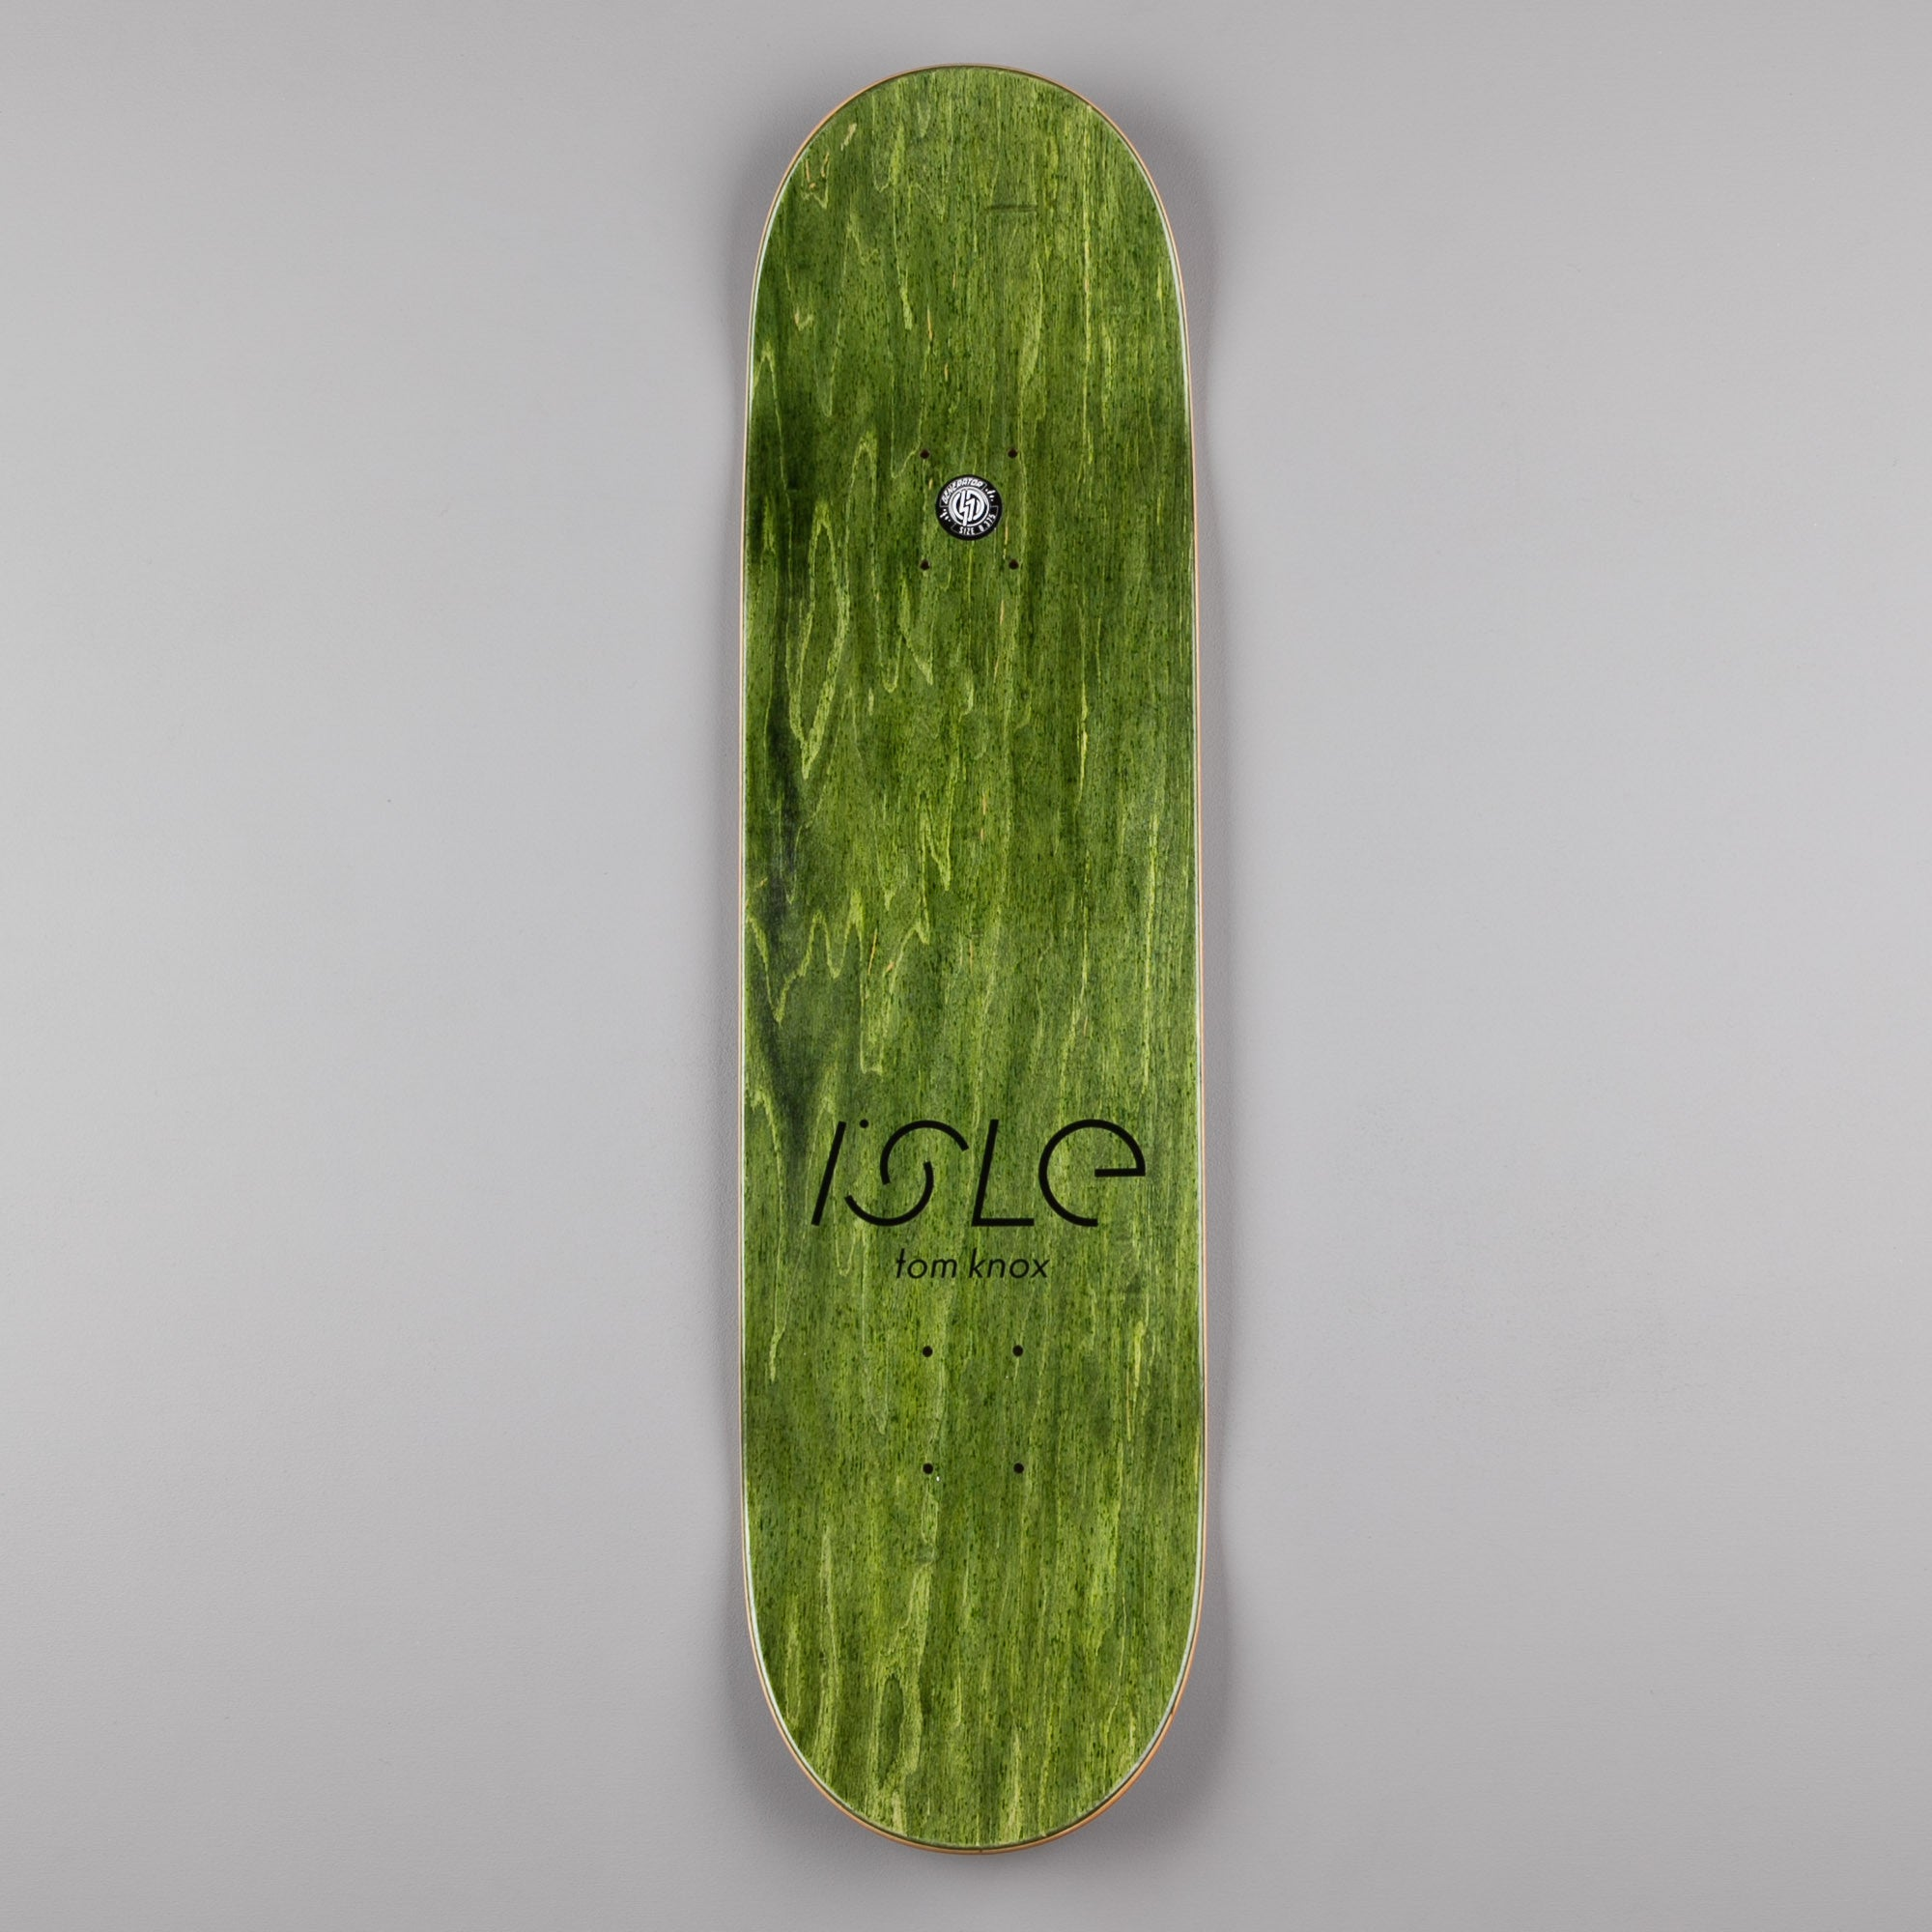 Isle Brush Tom Knox Deck - 8.375""